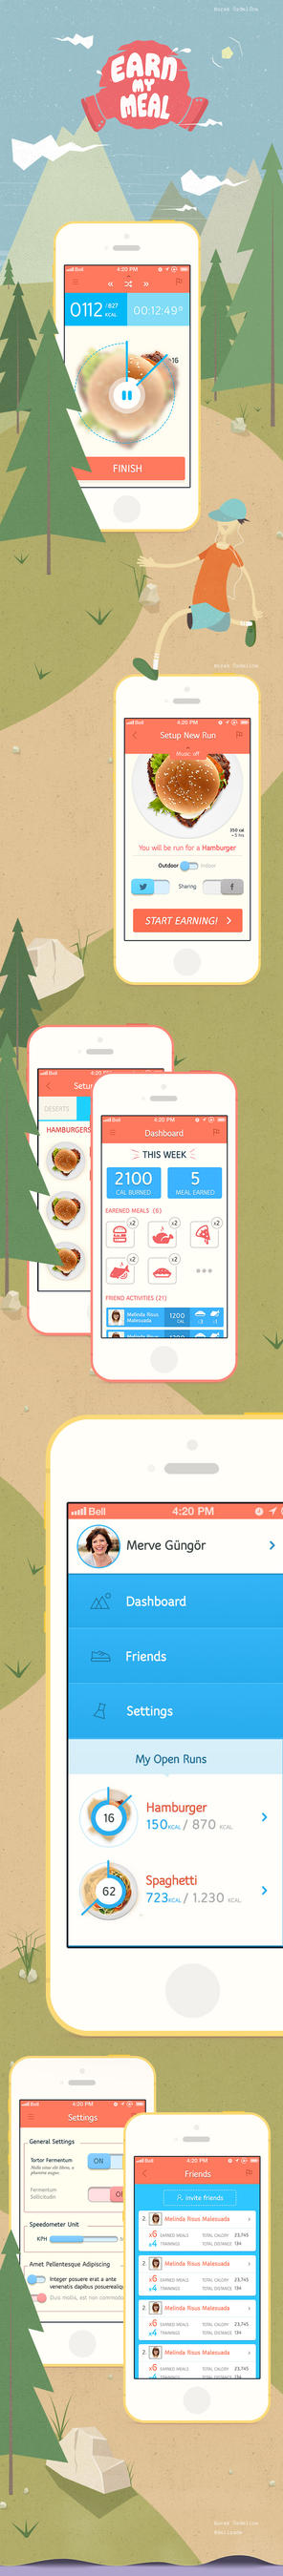 'Earn My Meal' iPhone App UI Design by GoldenBugSpread